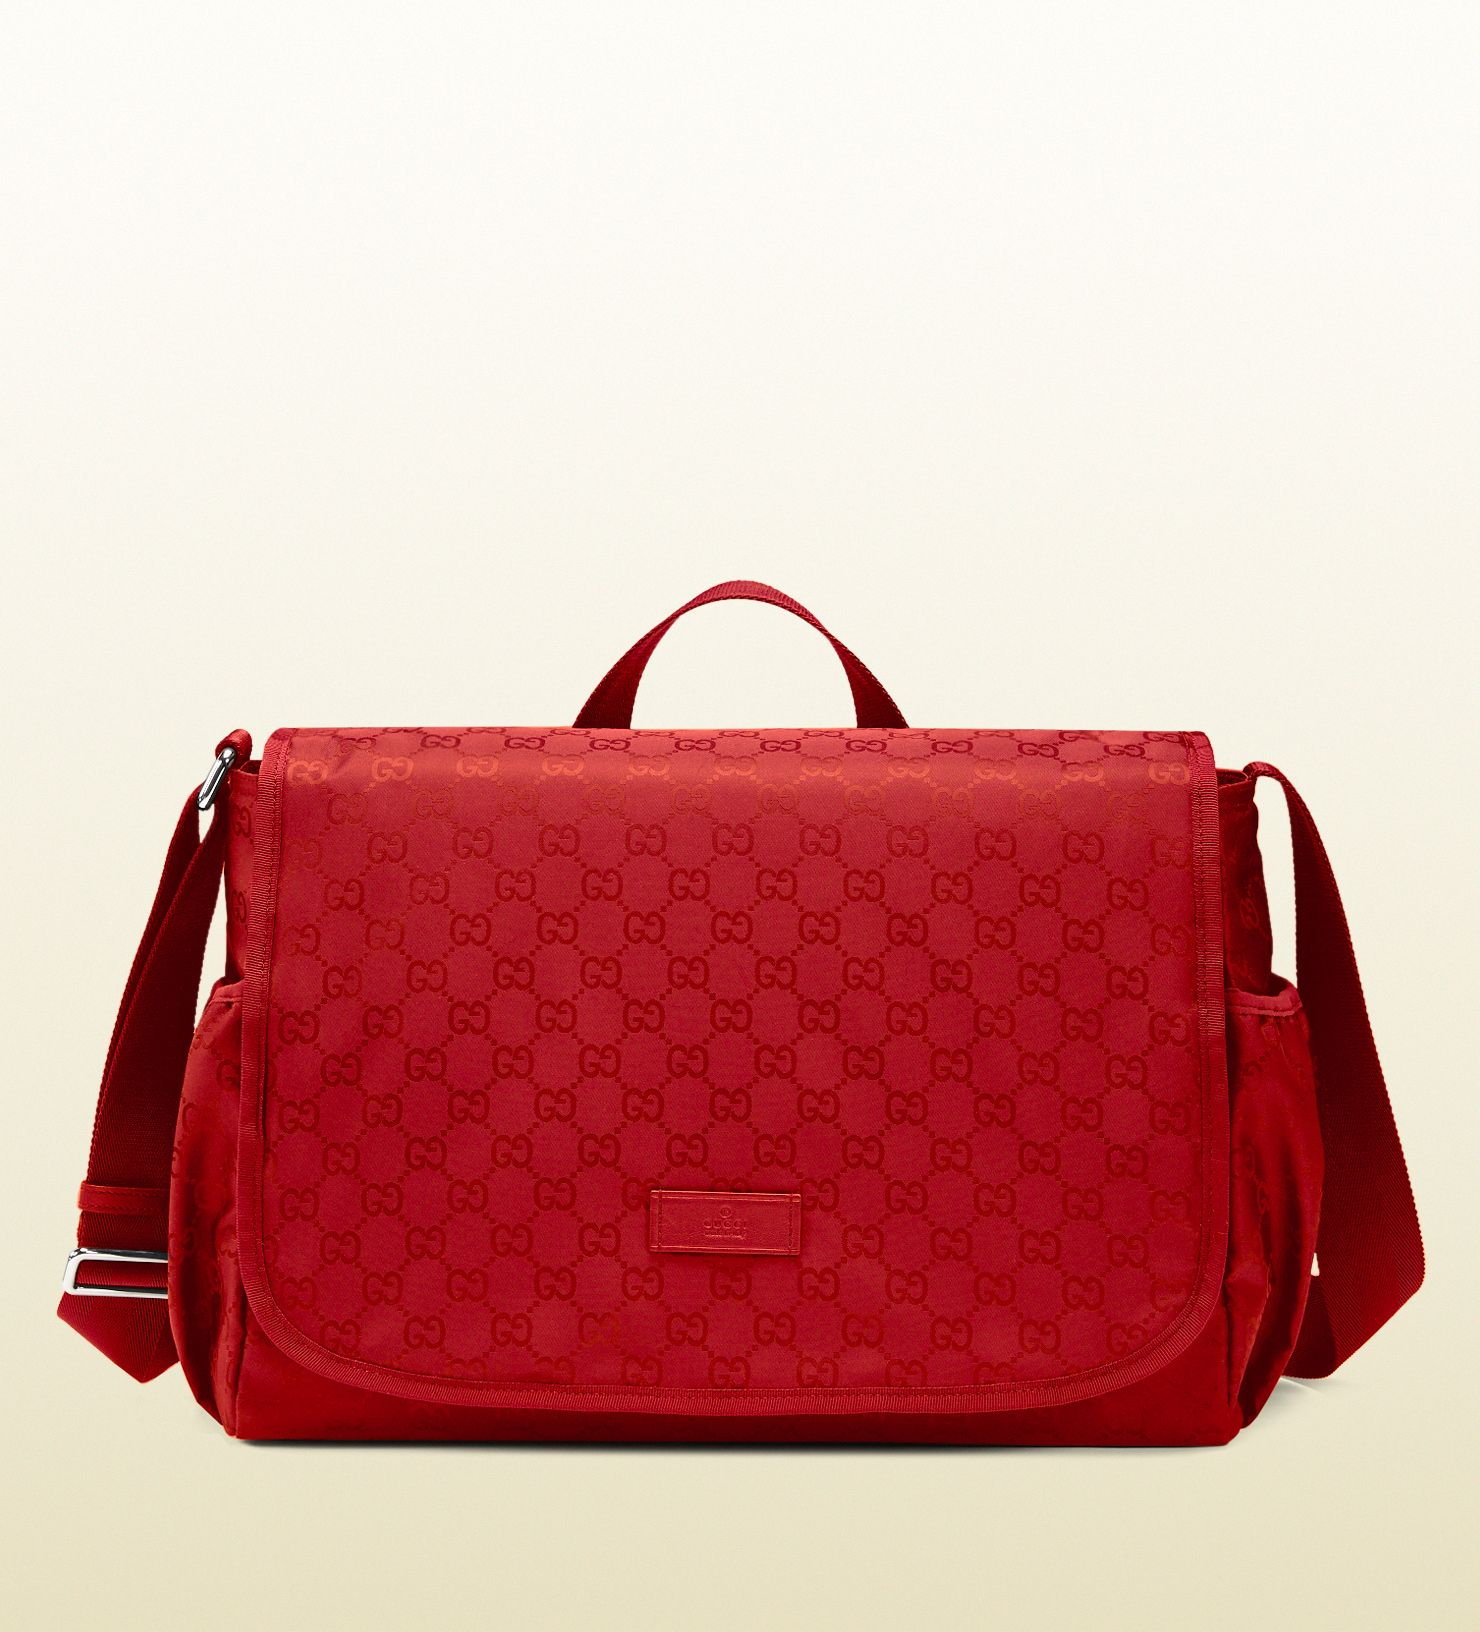 ff1dc1b4787 Gucci Red Red Nylon Ssima Diaper Bag - mega pricey